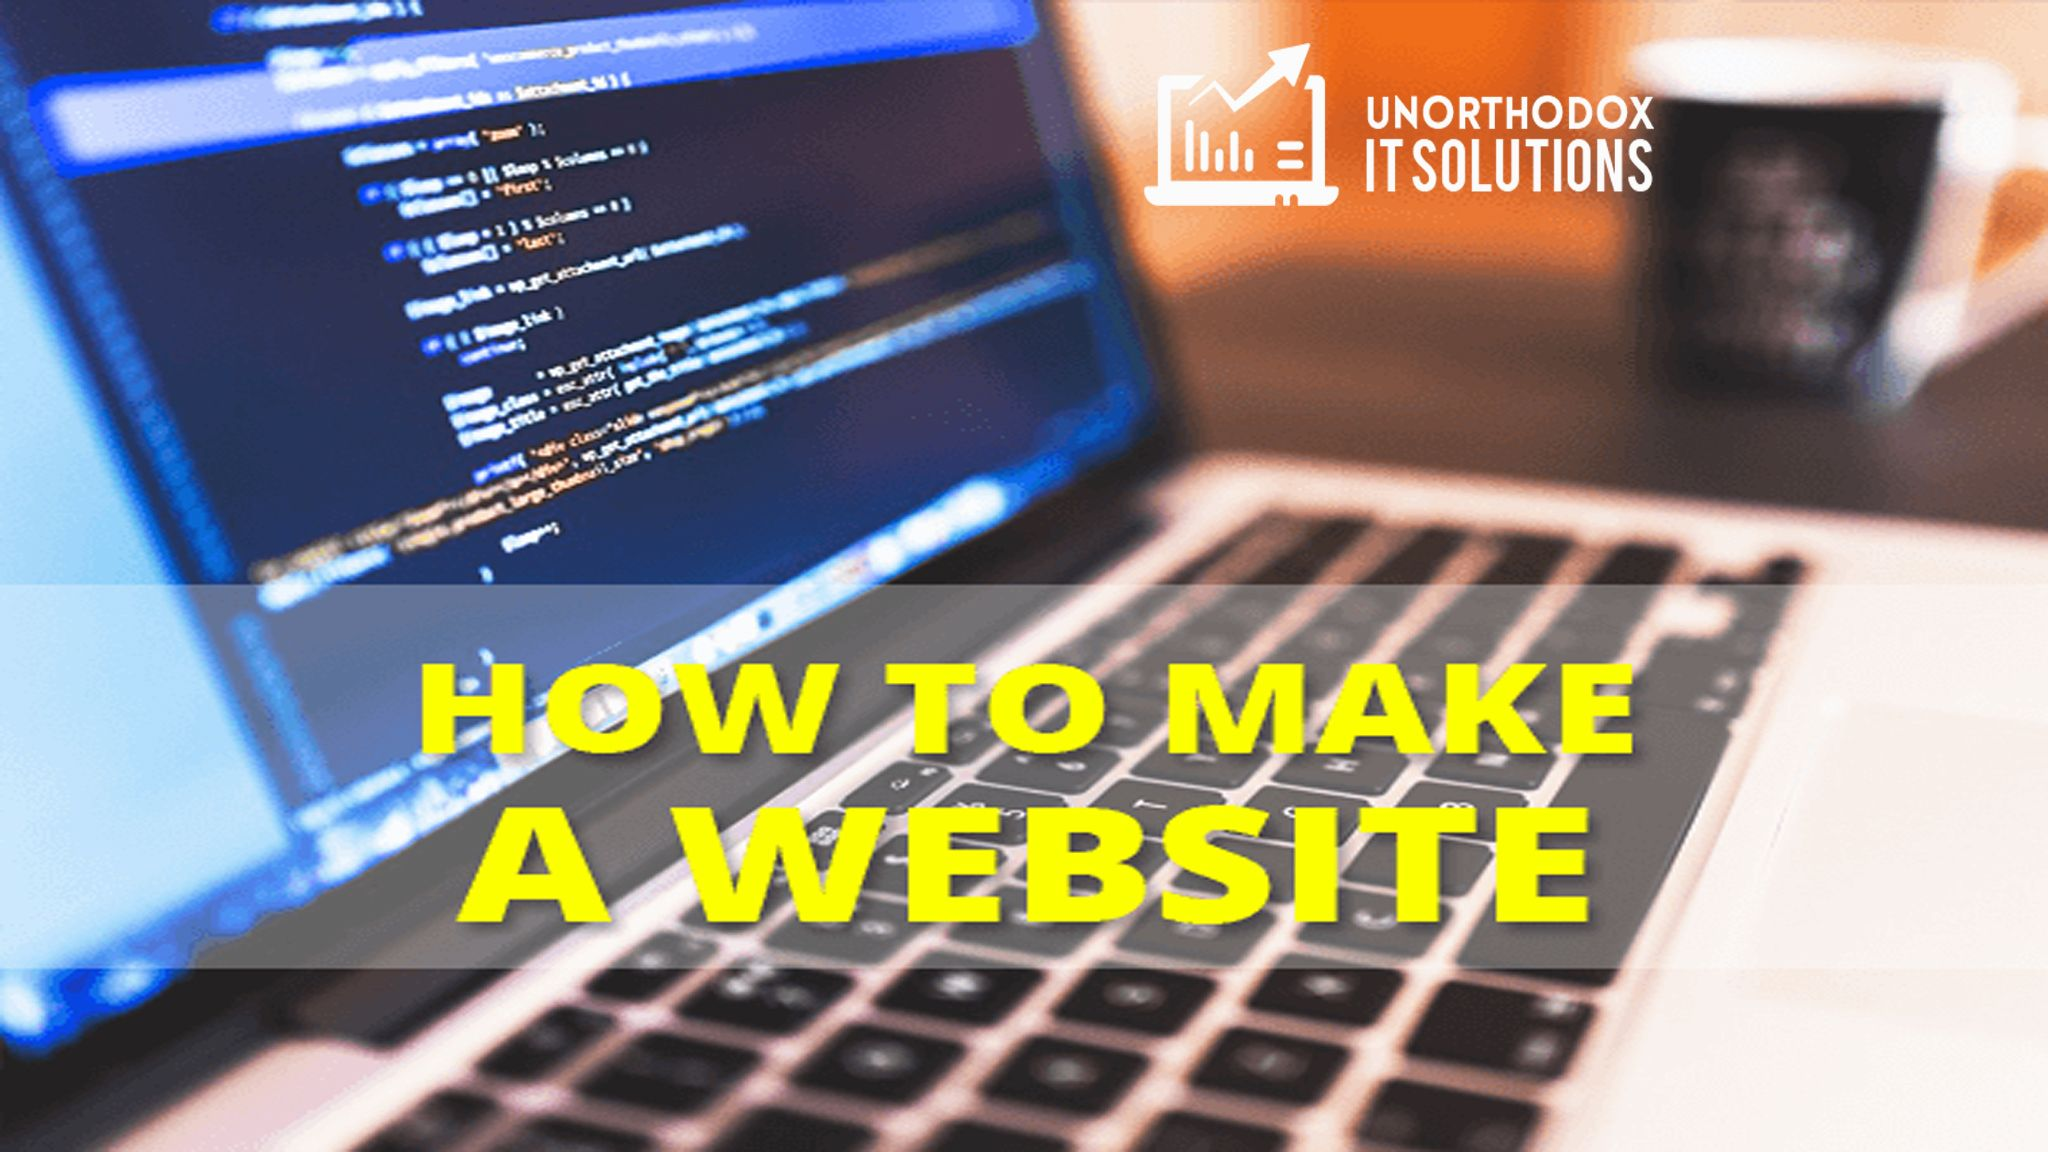 By making web page styles both simple to use and quickly